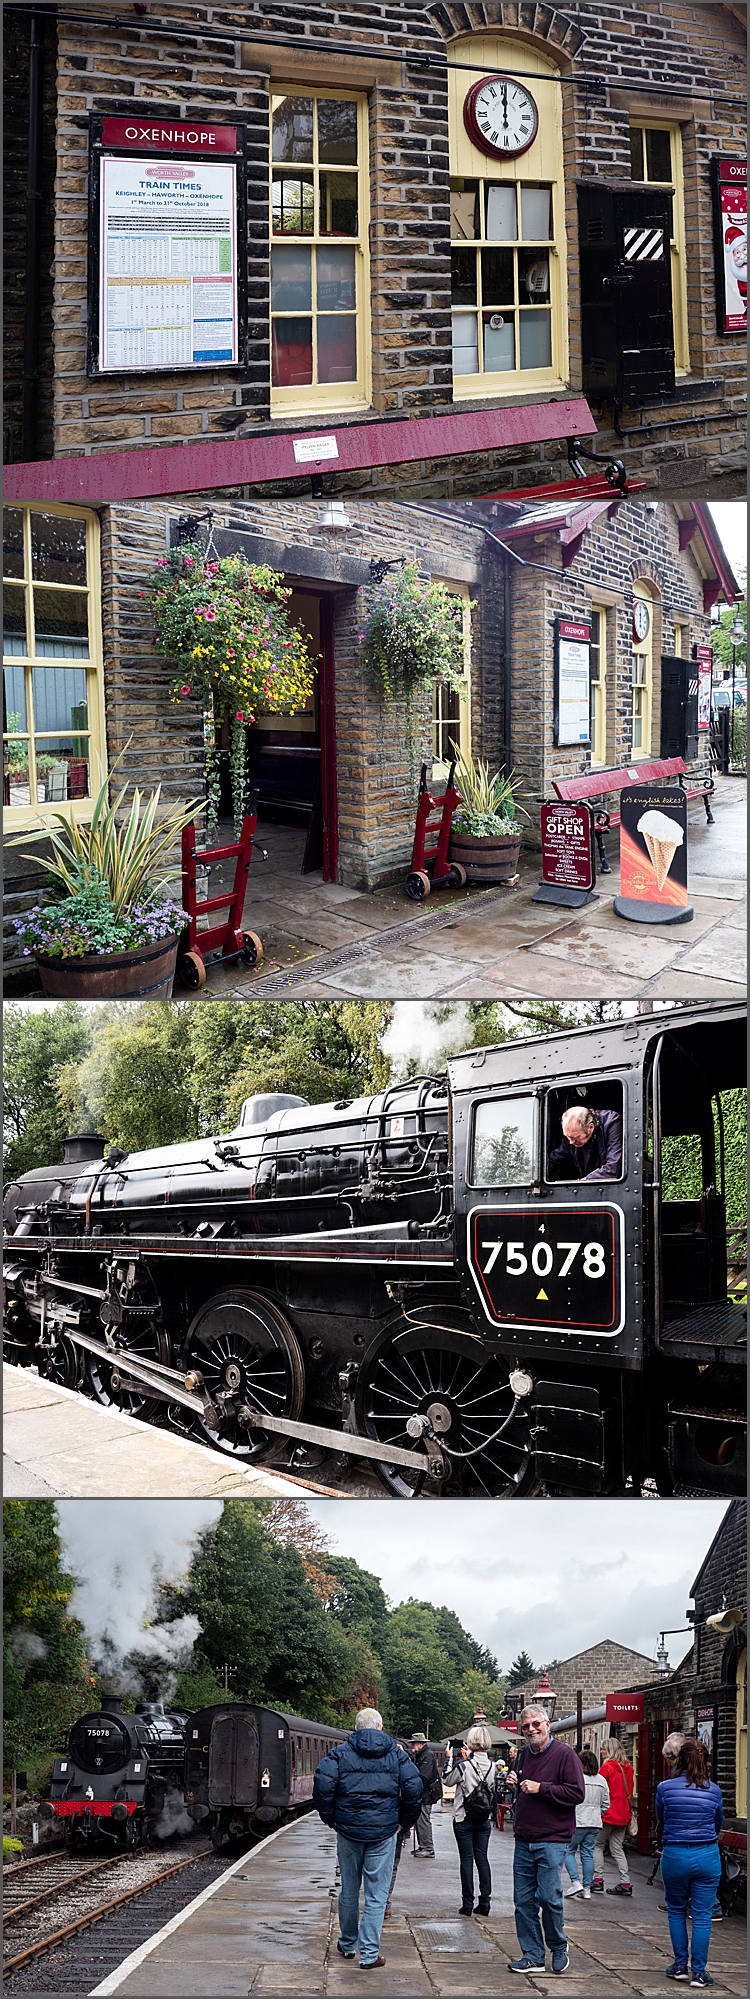 Oxenhope station and engine 75078 by Maggie Booth Photography